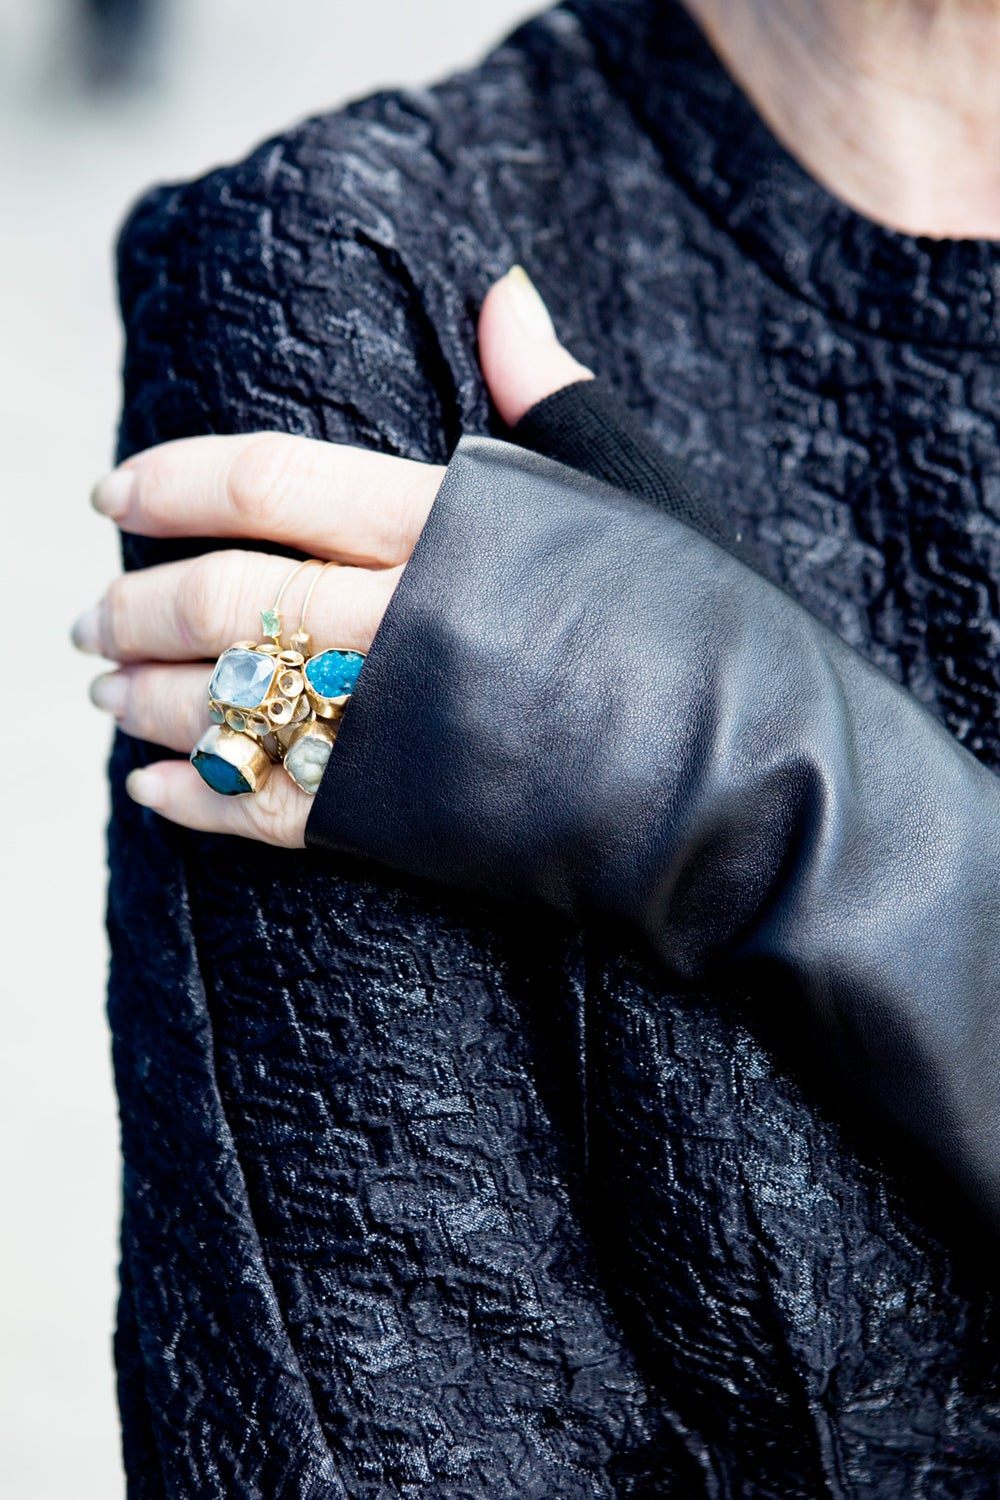 Linda's gloves are from Alexander Wang.